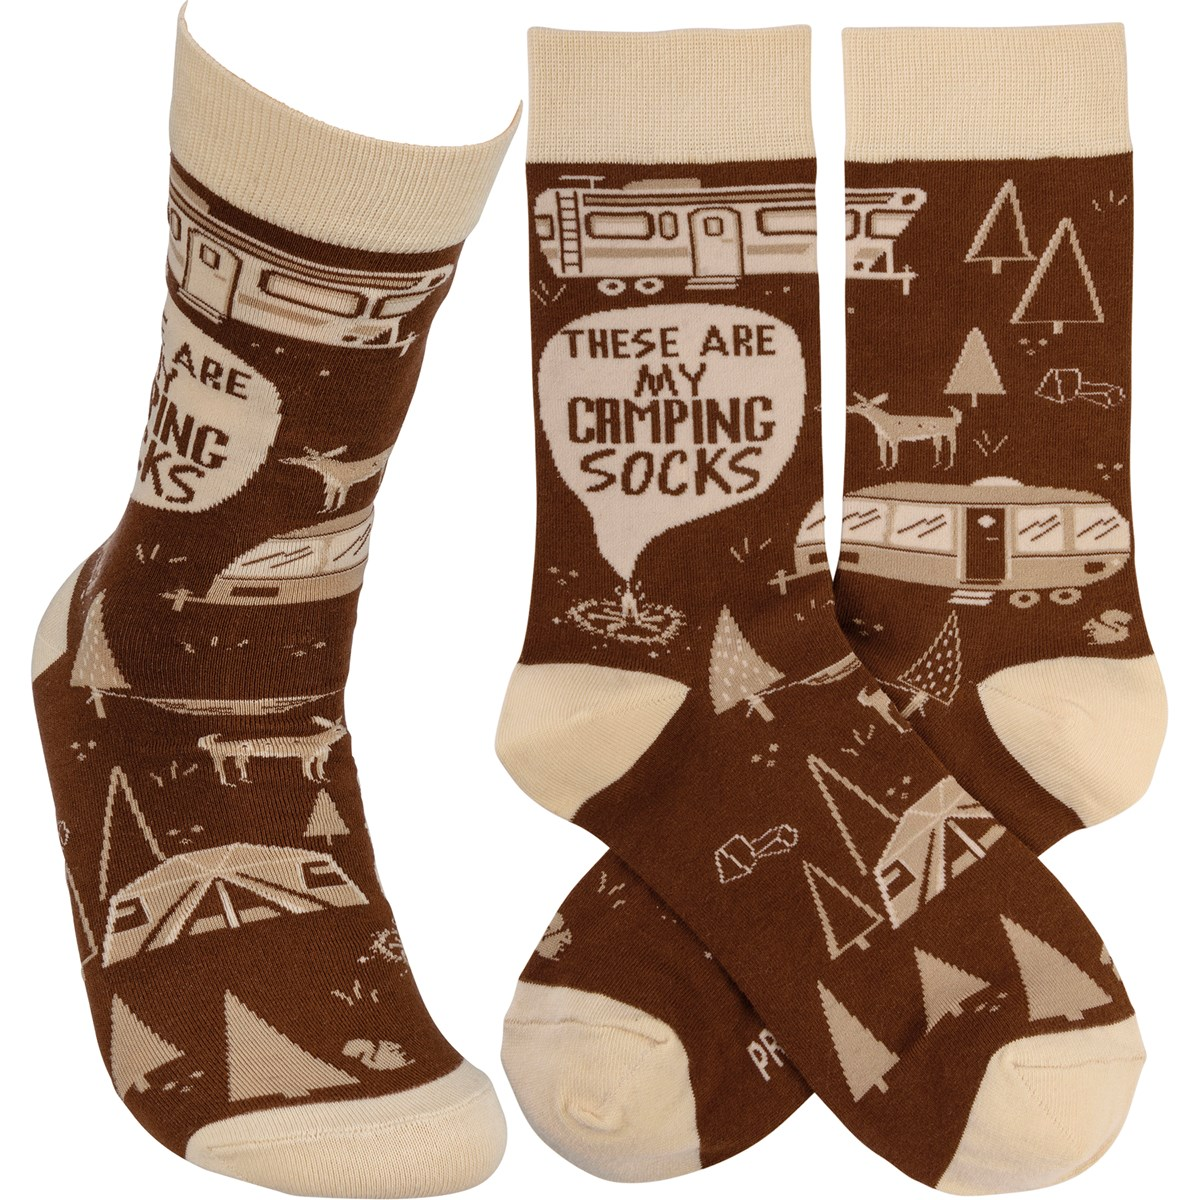 Socks - These Are My Camping Socks - One Size Fits Most - Cotton, Nylon, Spandex